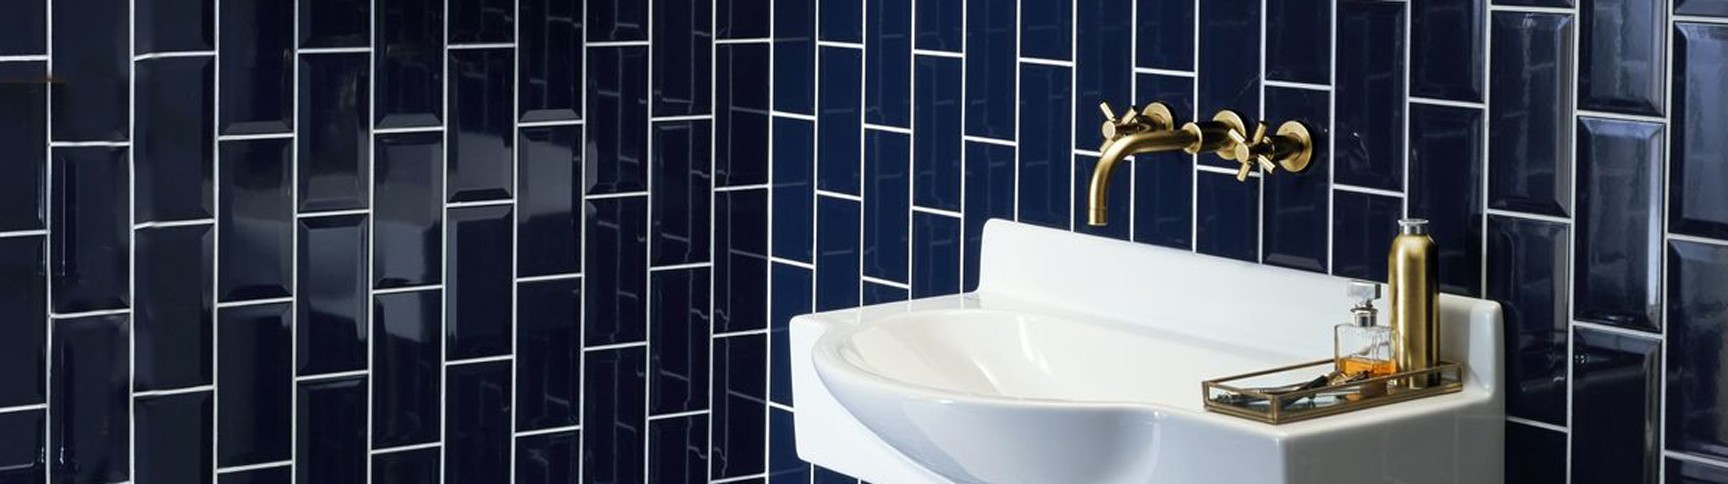 Bathroom Wall Tiles   Great Value Prices   World of Tiles